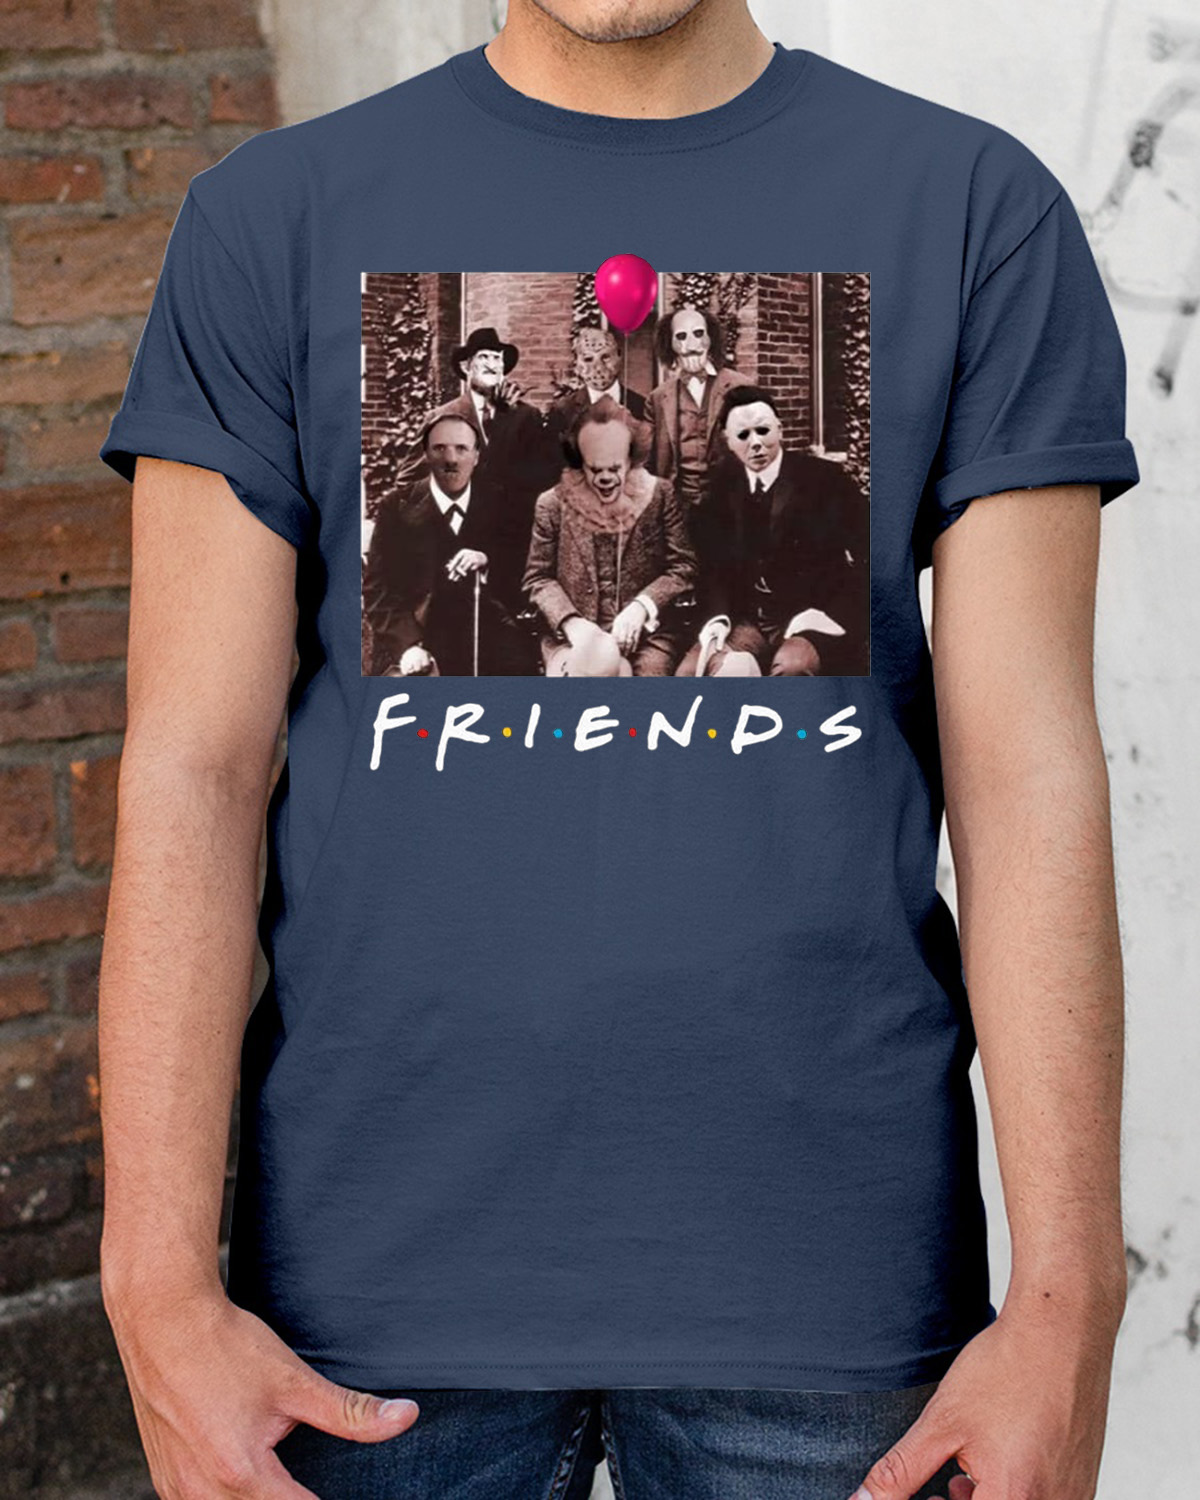 Halloween Friends Shirt.Womens Horror Halloween Team Friends Shirt Breakshirts Office